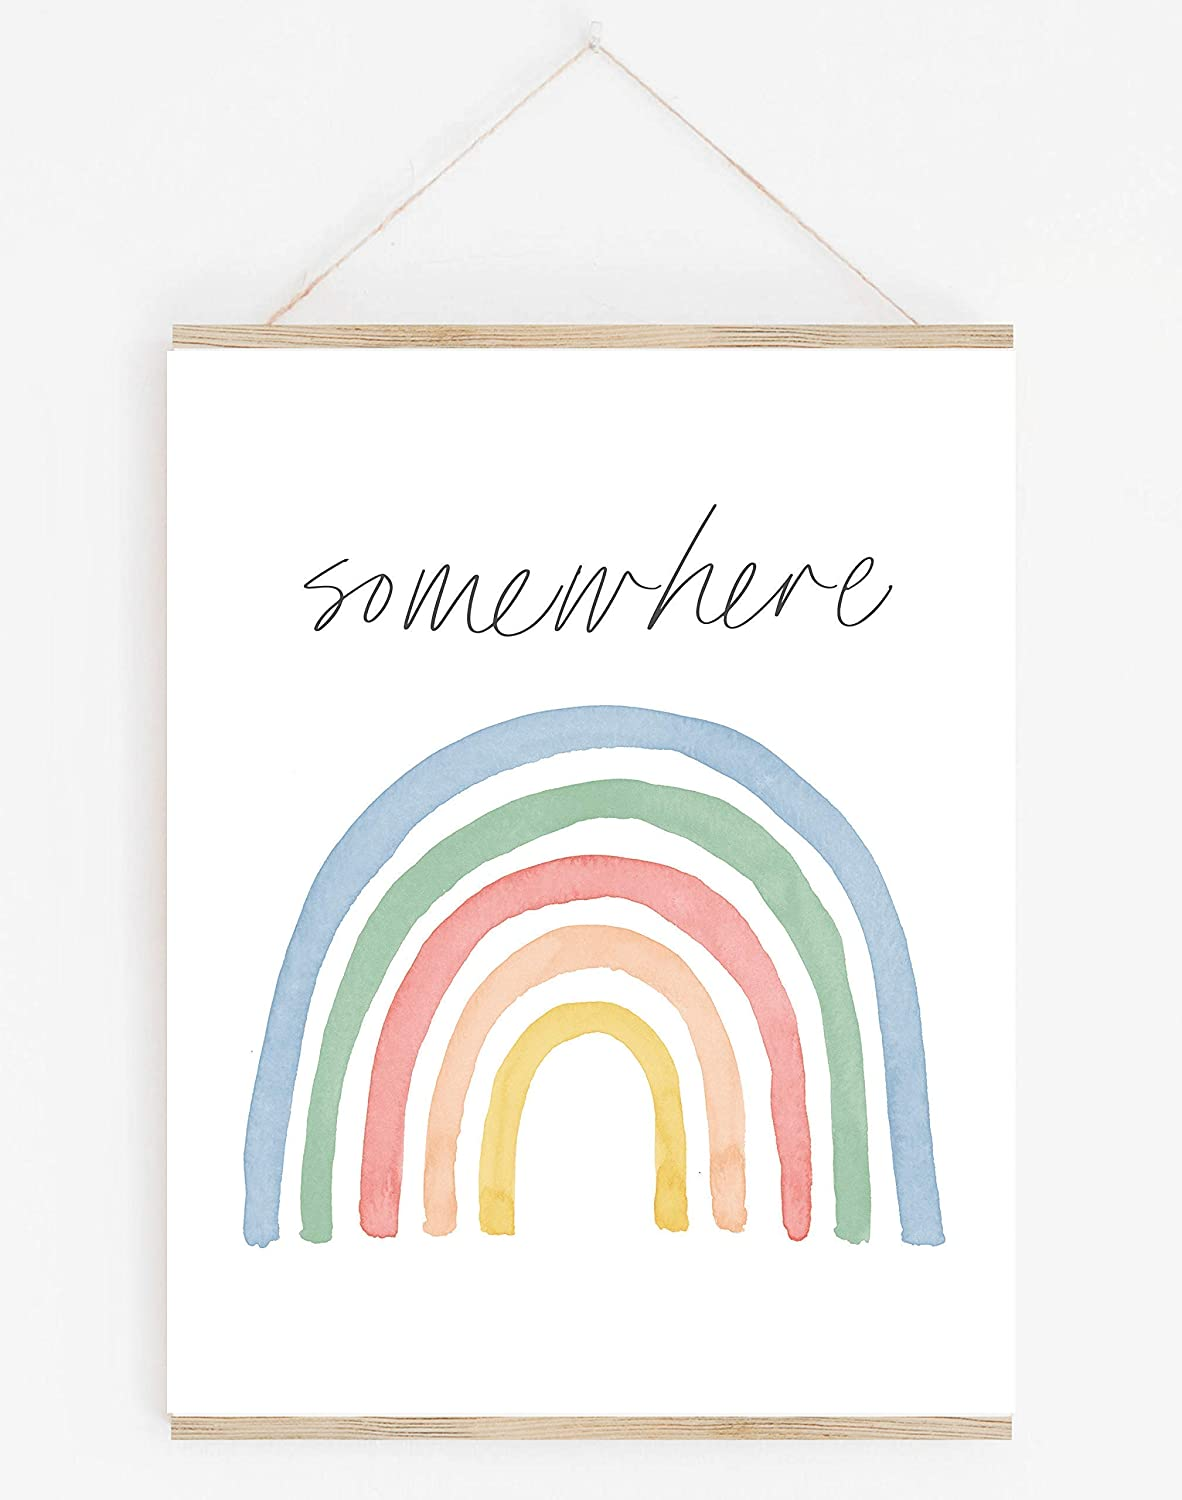 Watercolor Pastel Rainbow Wall Art. 11x14 UNFRAMED Decor Print Perfect for Baby or Child Nursery, Bedroom or Playroom.